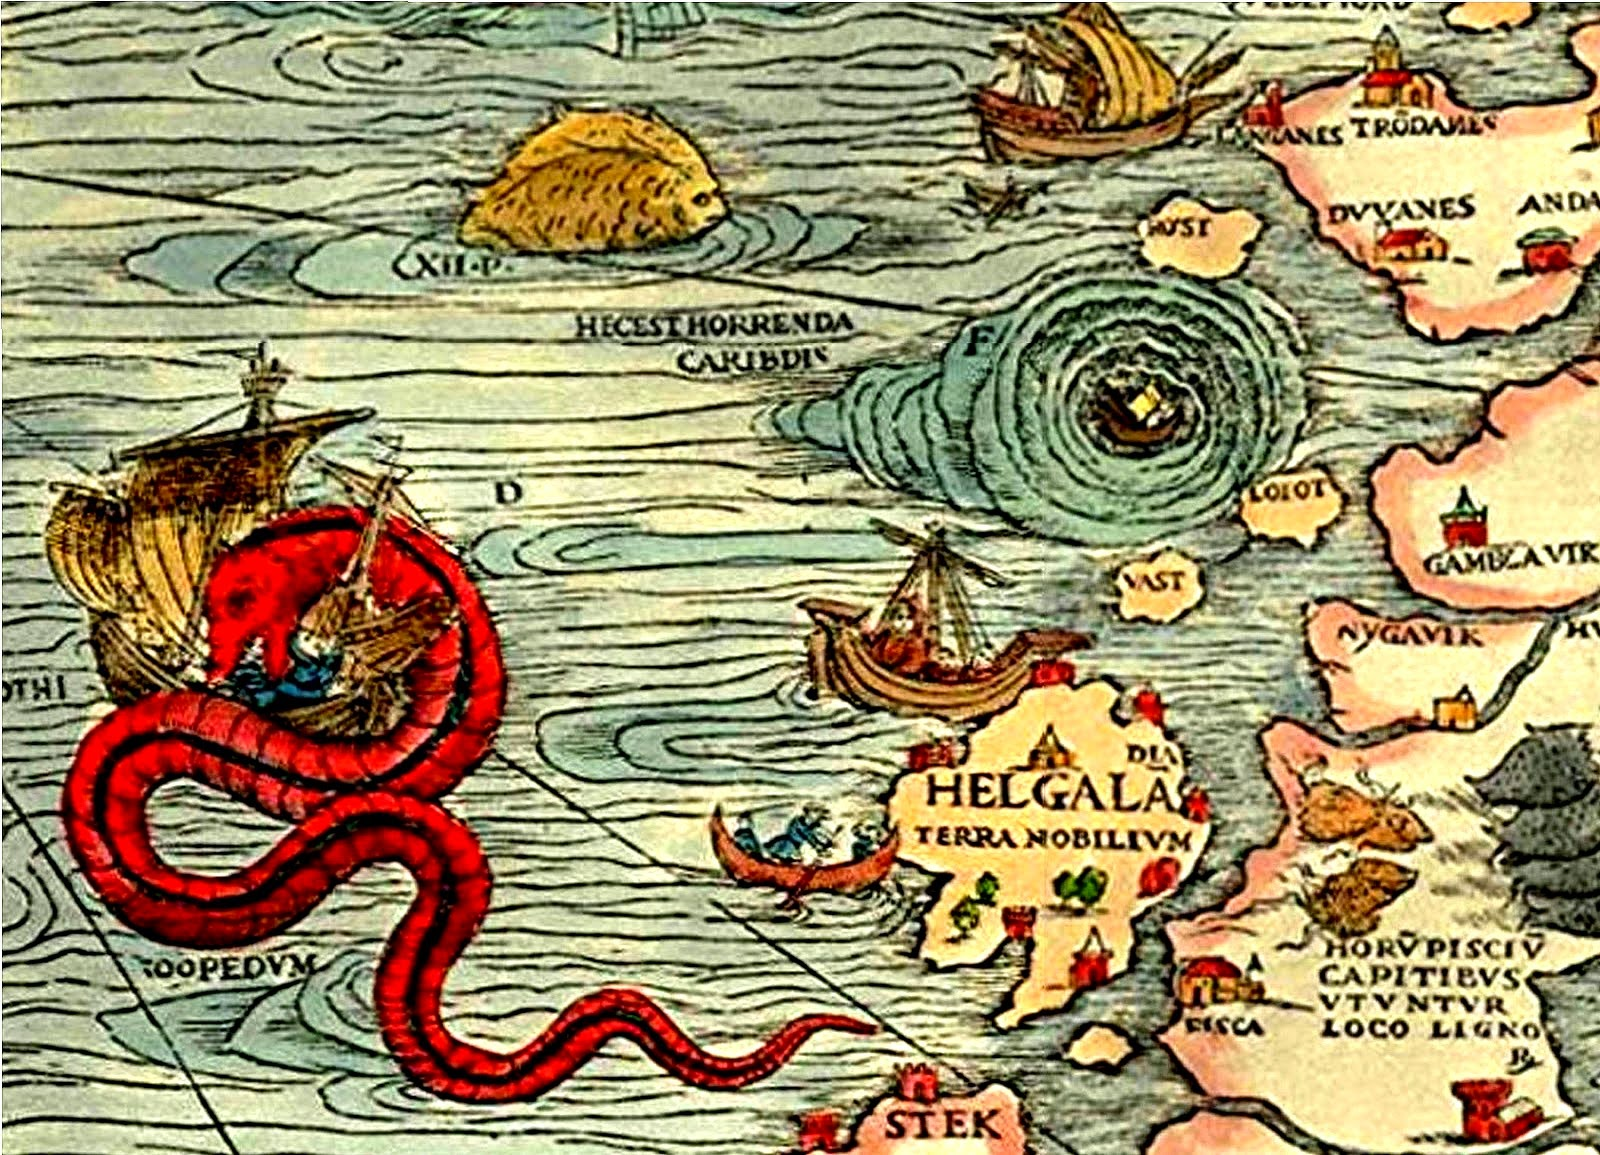 Giant red eel-like sea serpent on antiquarian maritime map, extended